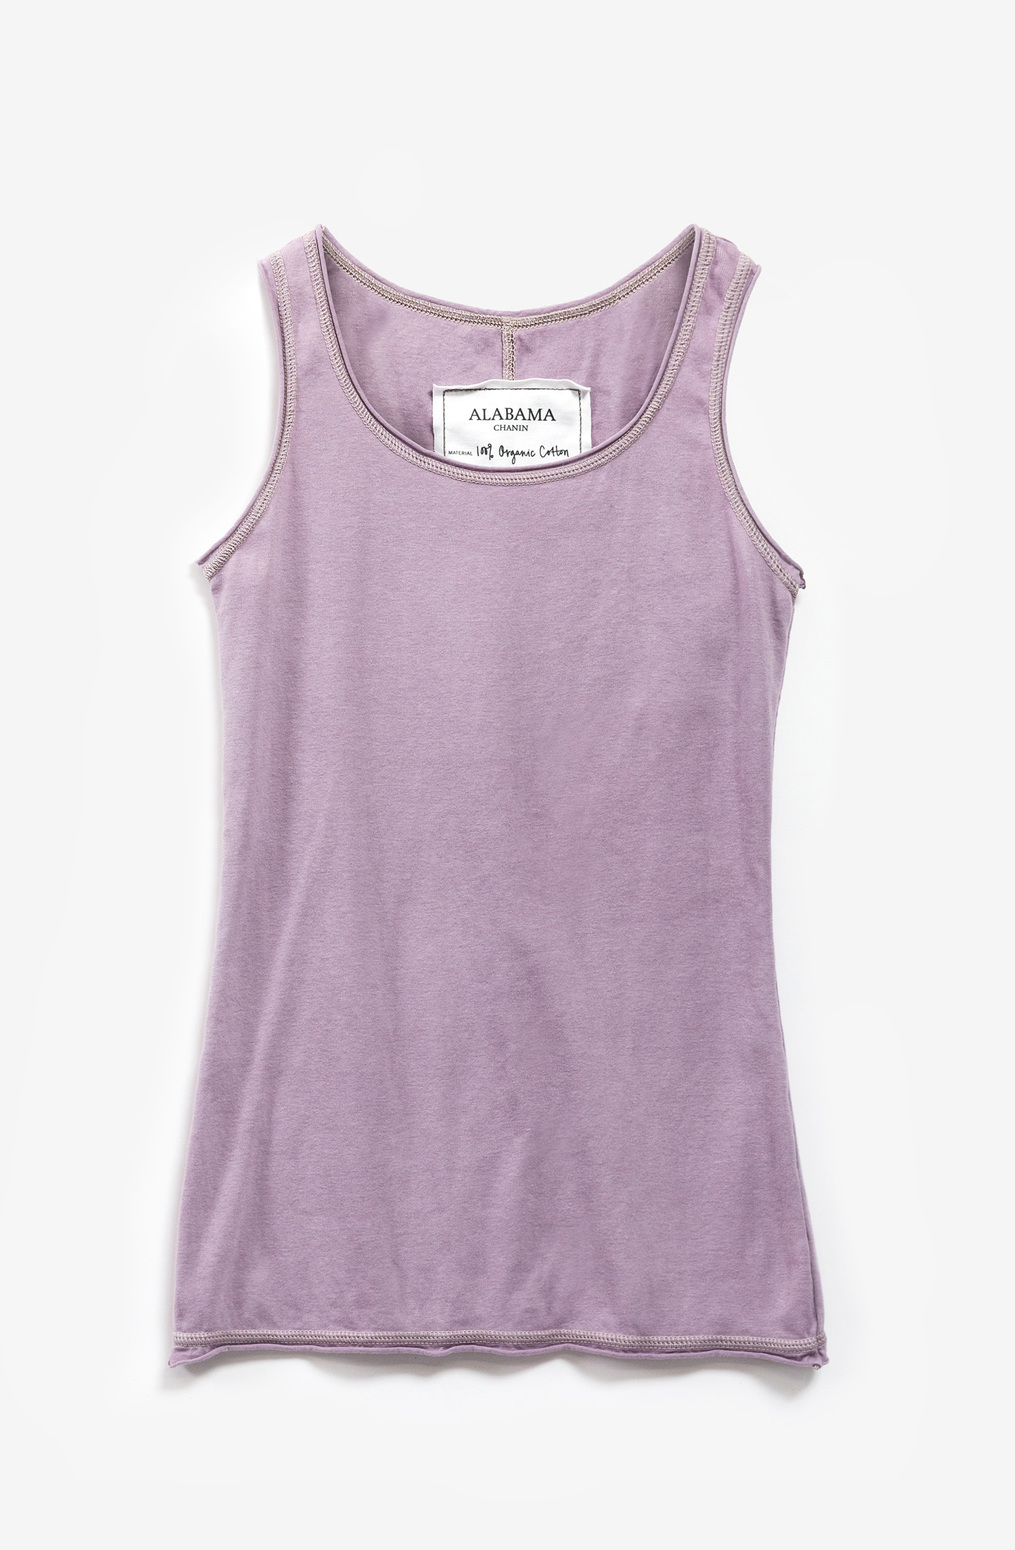 Alabama chanin soft knit tank